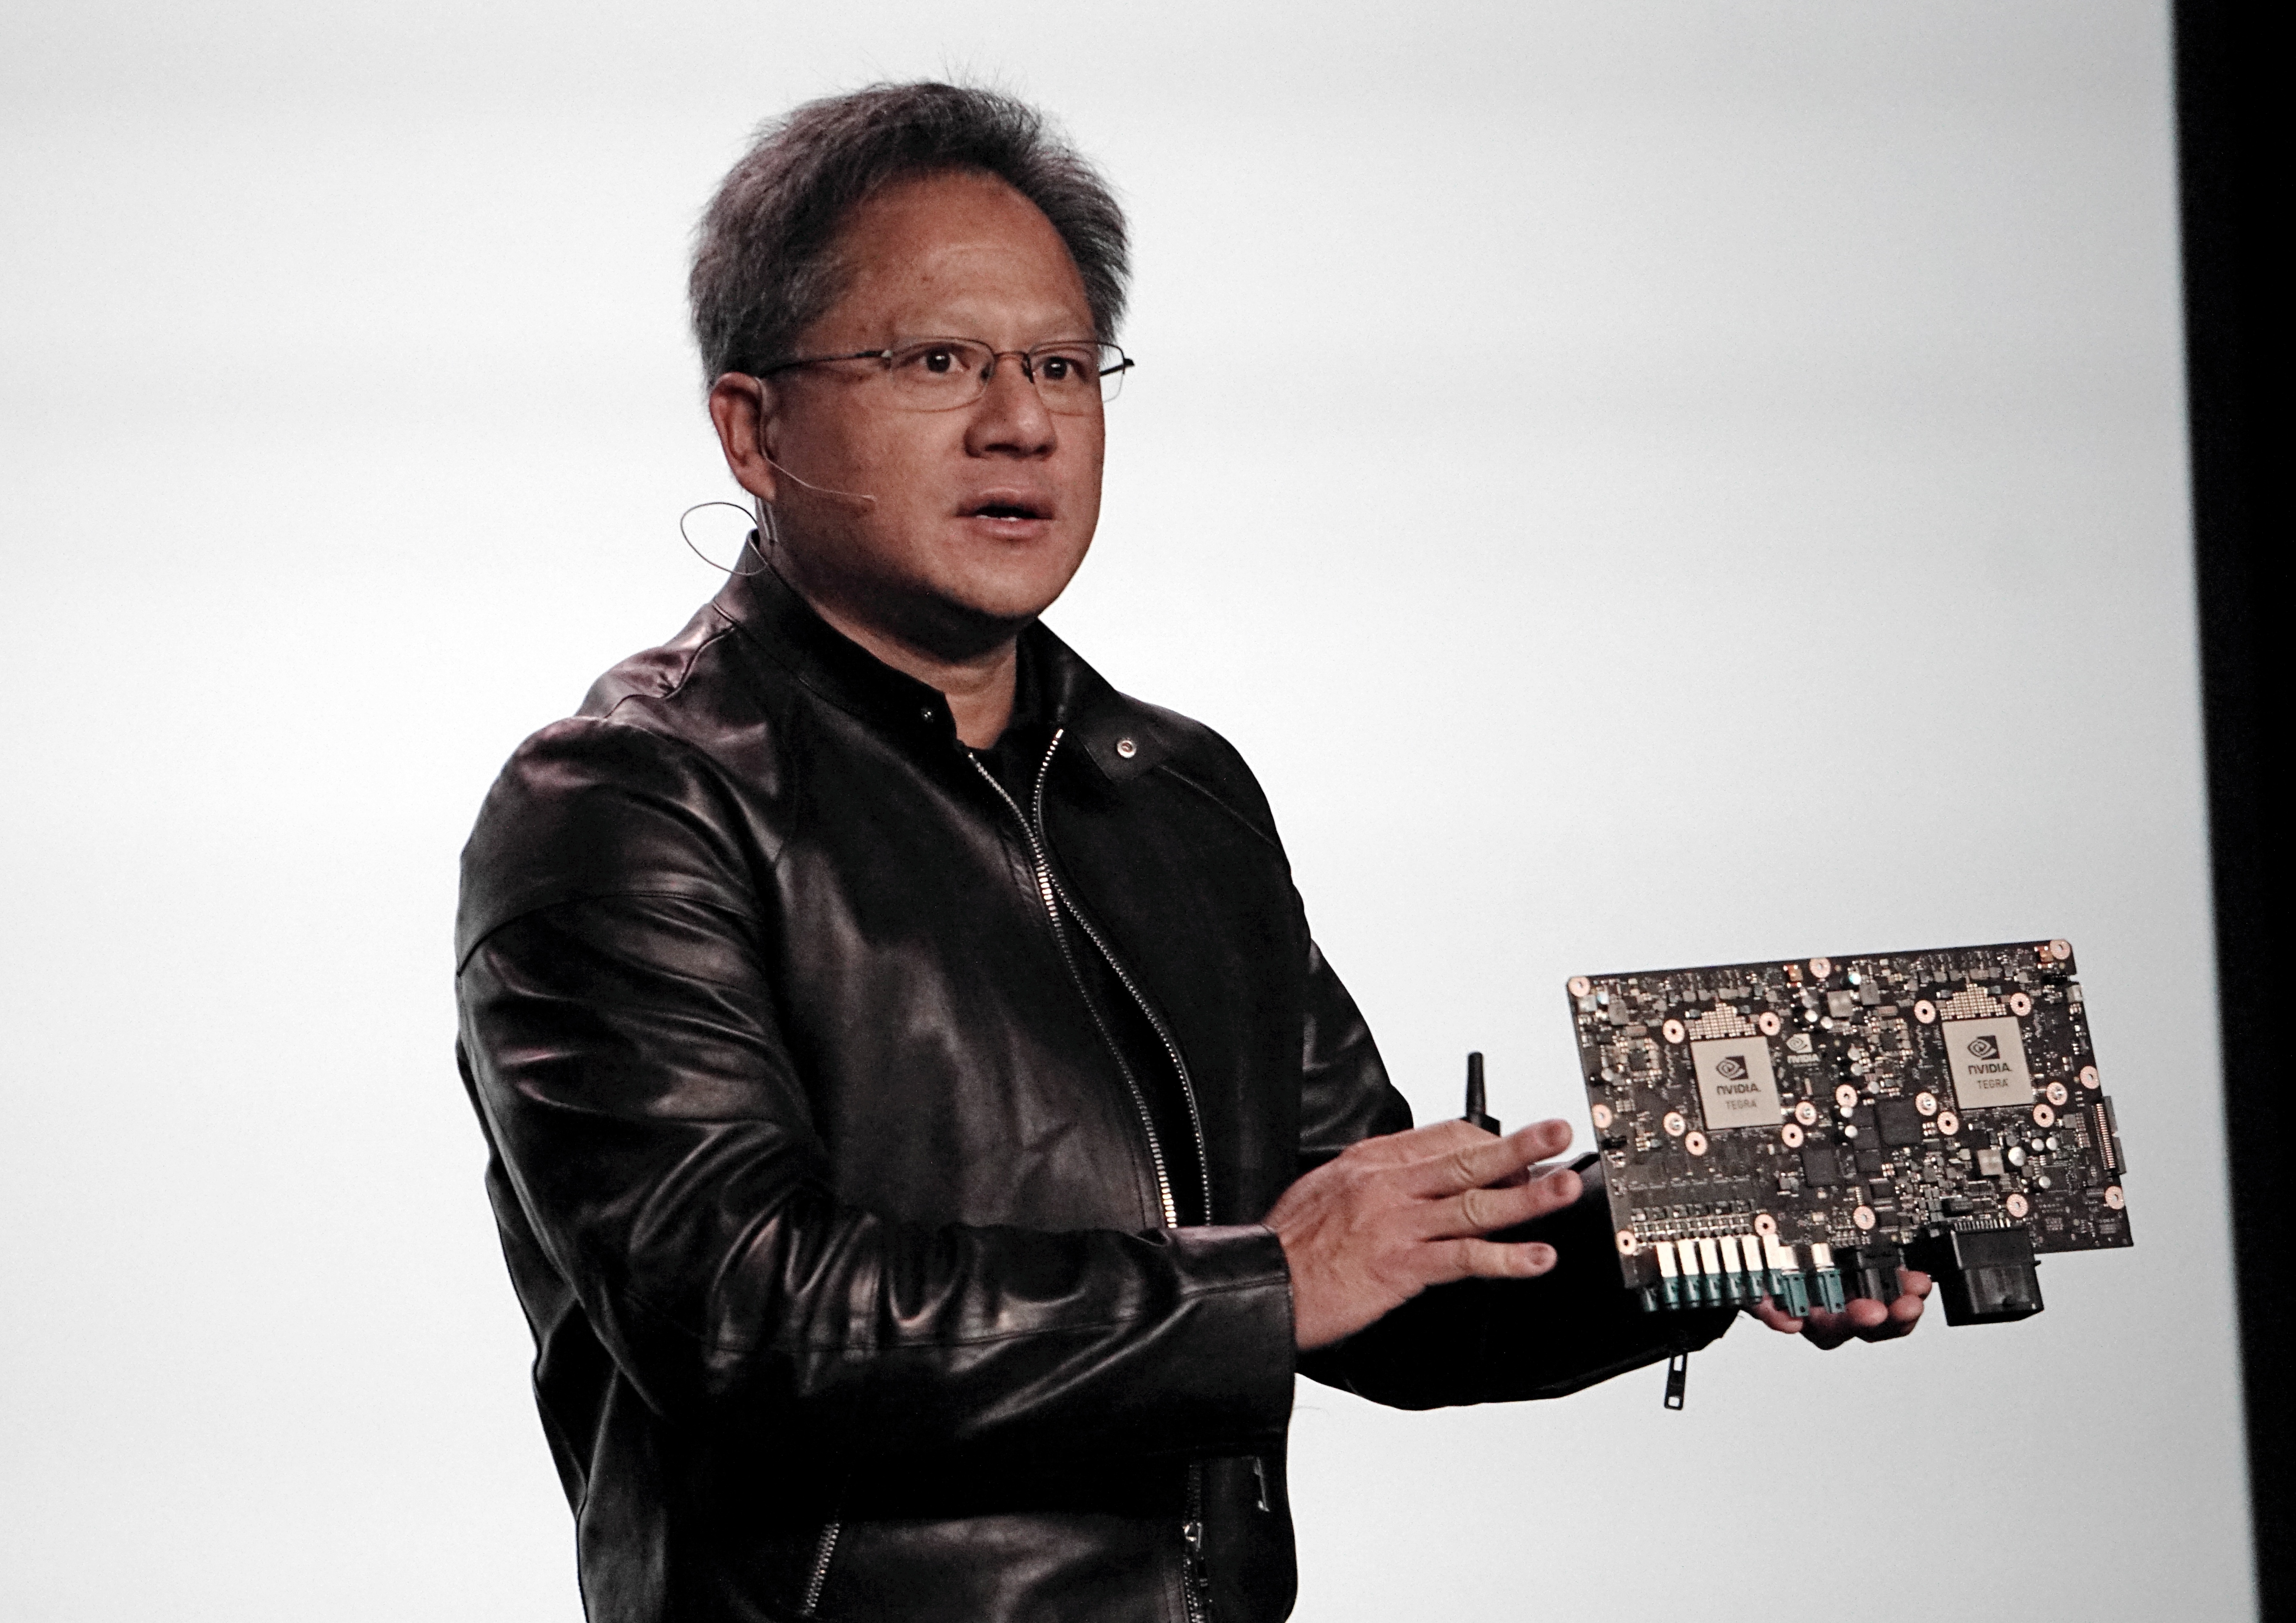 NVIDIA's Drive PX 2 is a liquid-cooled supercomputer for cars